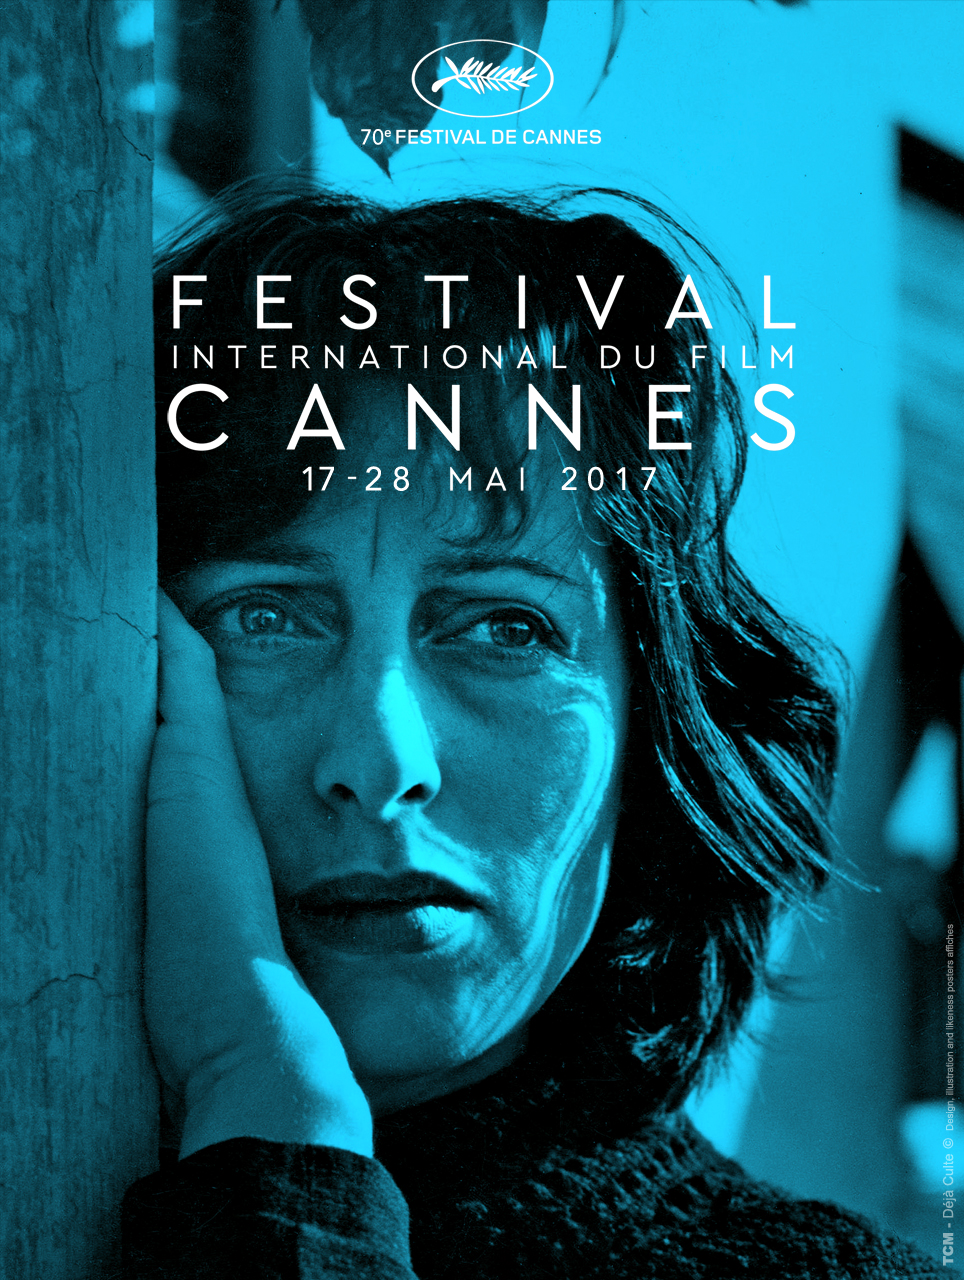 Cannes-2017-main-poster-2.jpg